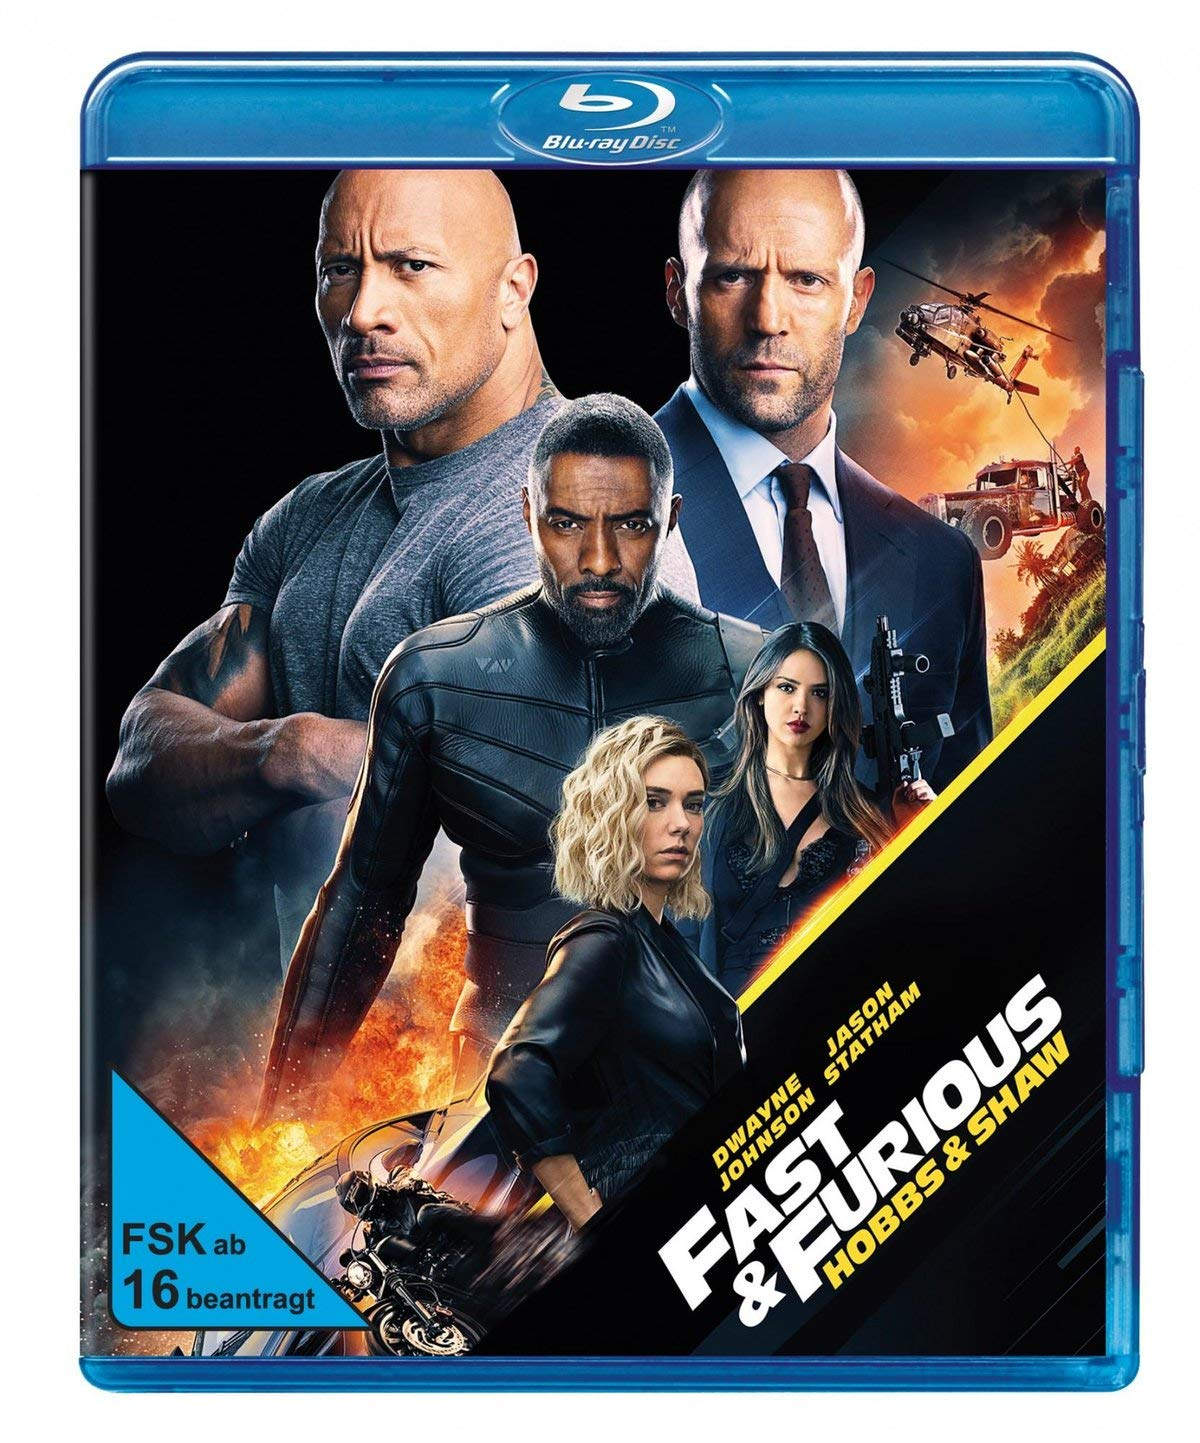 Fast and Furious Hobbs and Shaw auf Blu-Ray 4K HDR